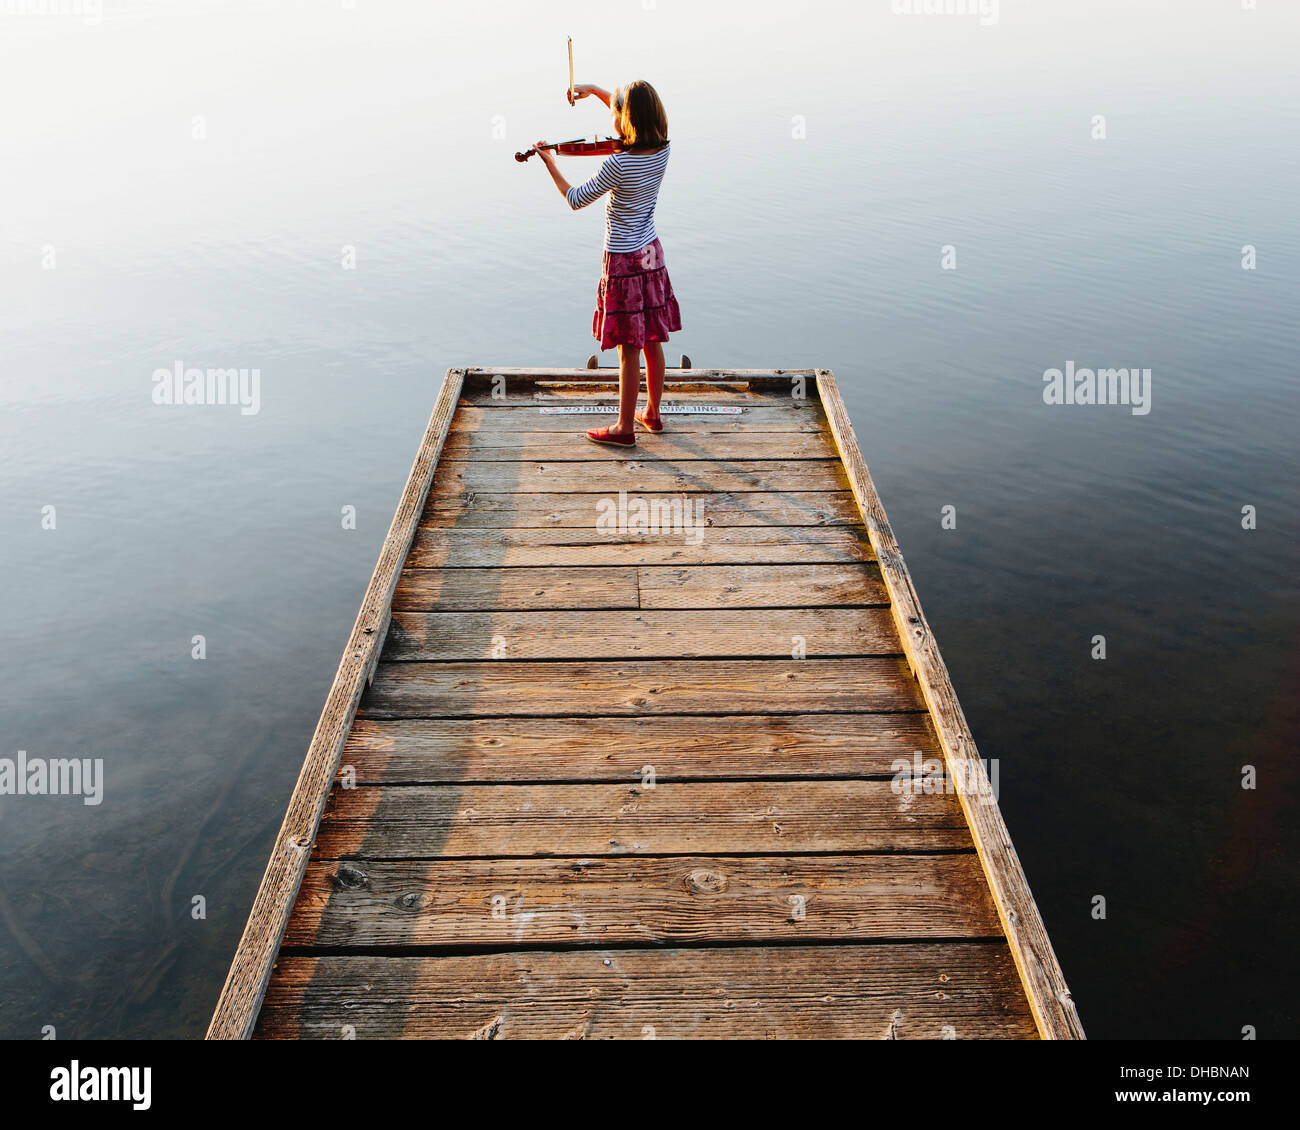 A ten year old girl playing the violin at dawn on a wooden dock. - Stock Image